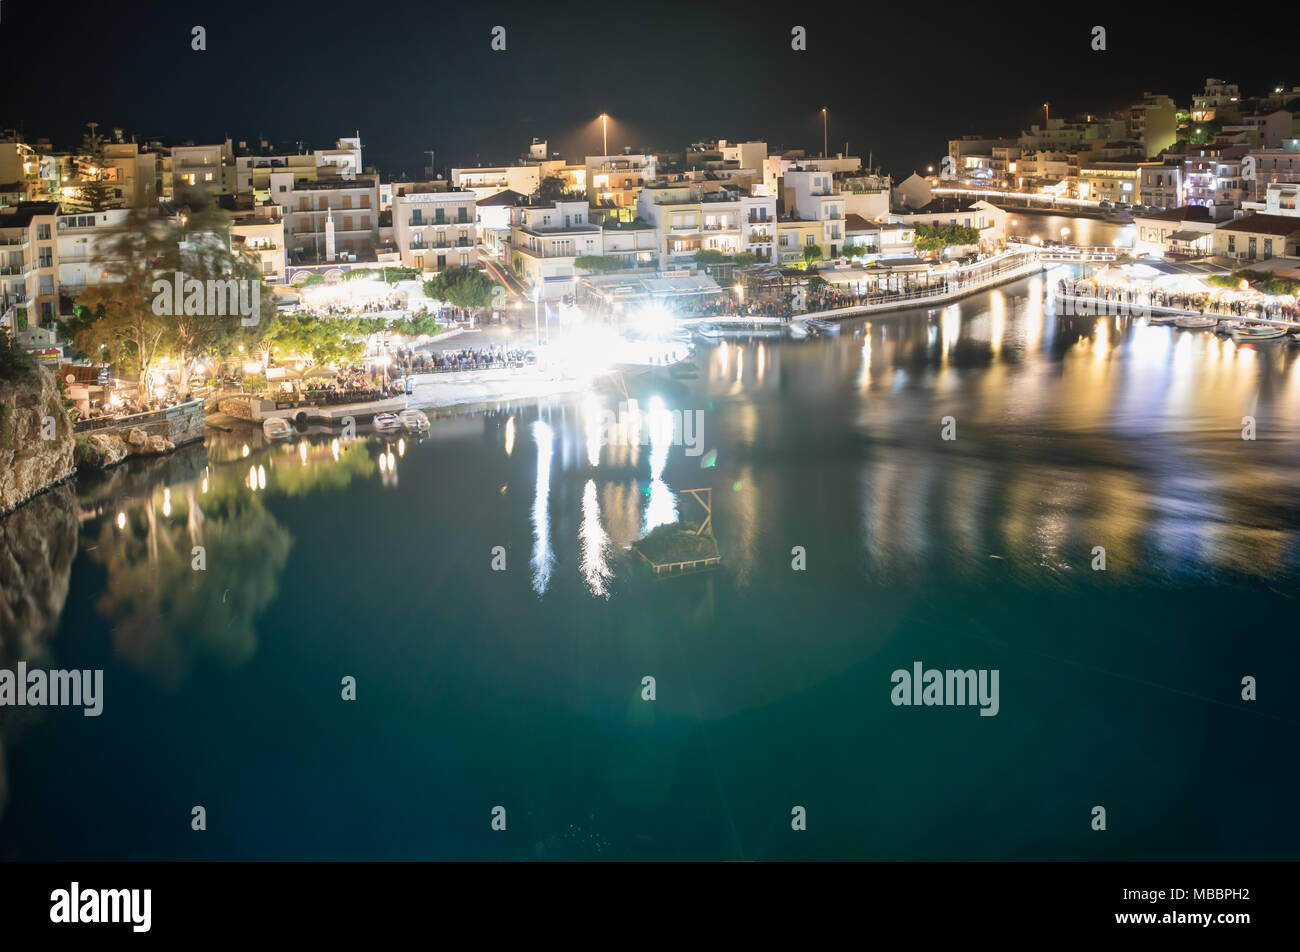 Agios Nikolaos, Crete, Greece. Cityscape with the night view to the internal lake or bay. Water reflections in the bay. Lights of the town reflected. - Stock Image